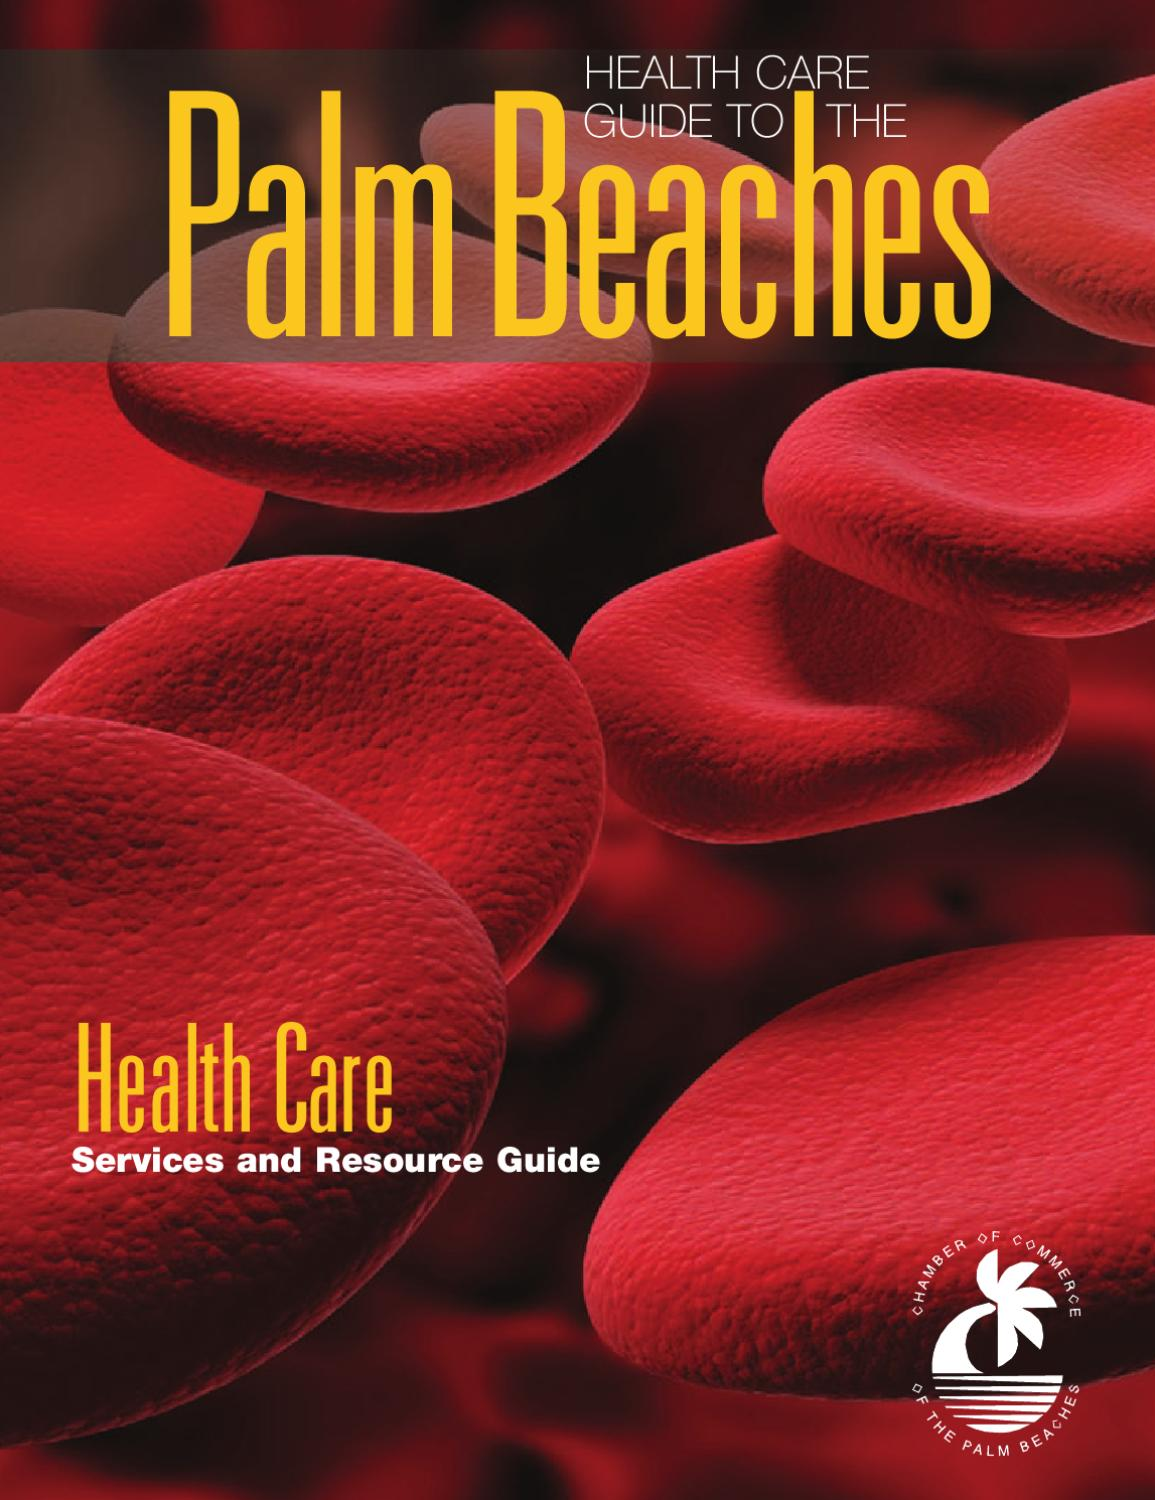 2011 Health Care Guide To The Palm Beaches By Chamber Of